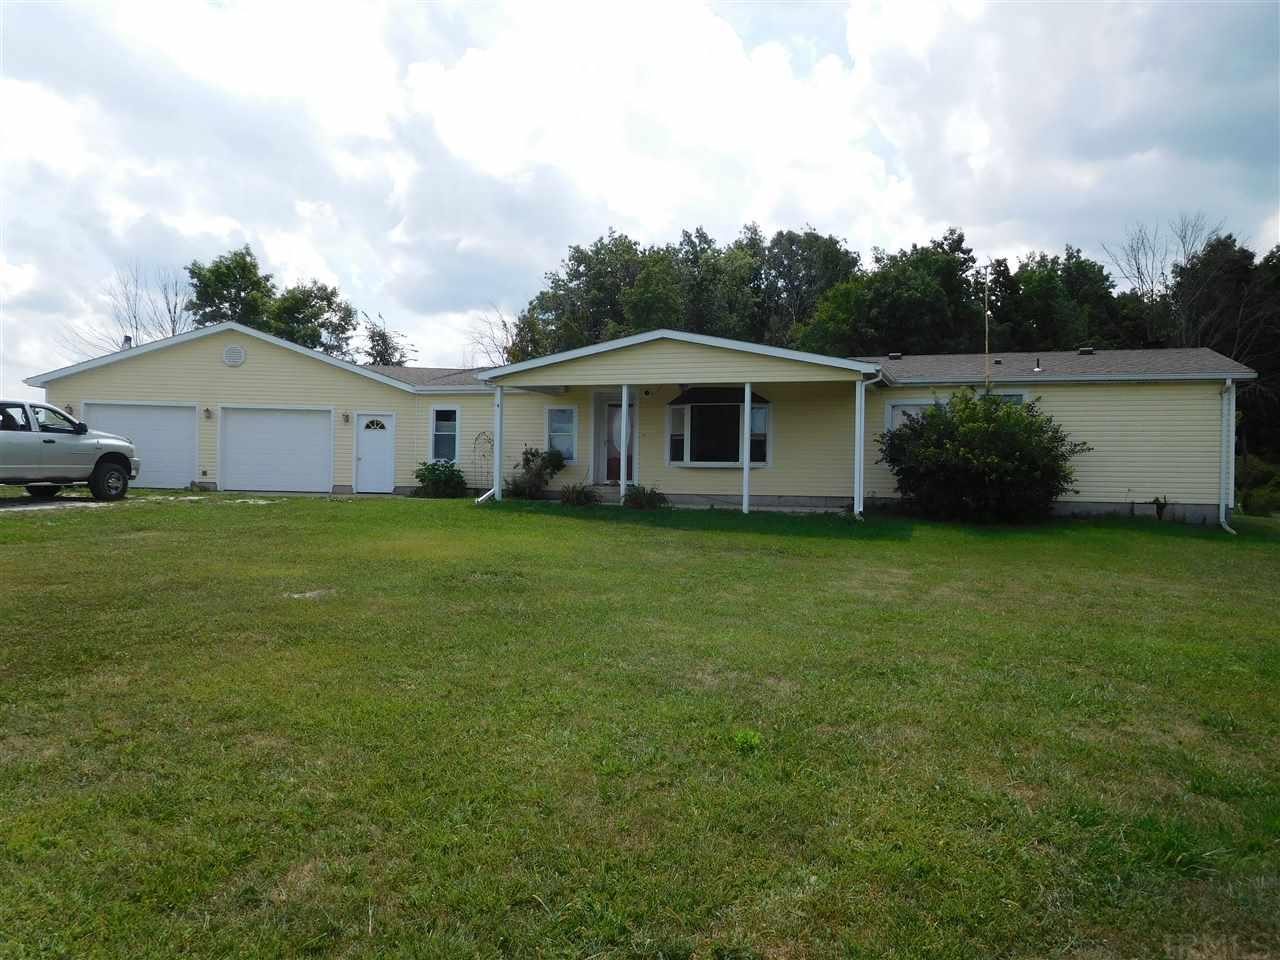 1486 E 600 N, Marion, IN 46952